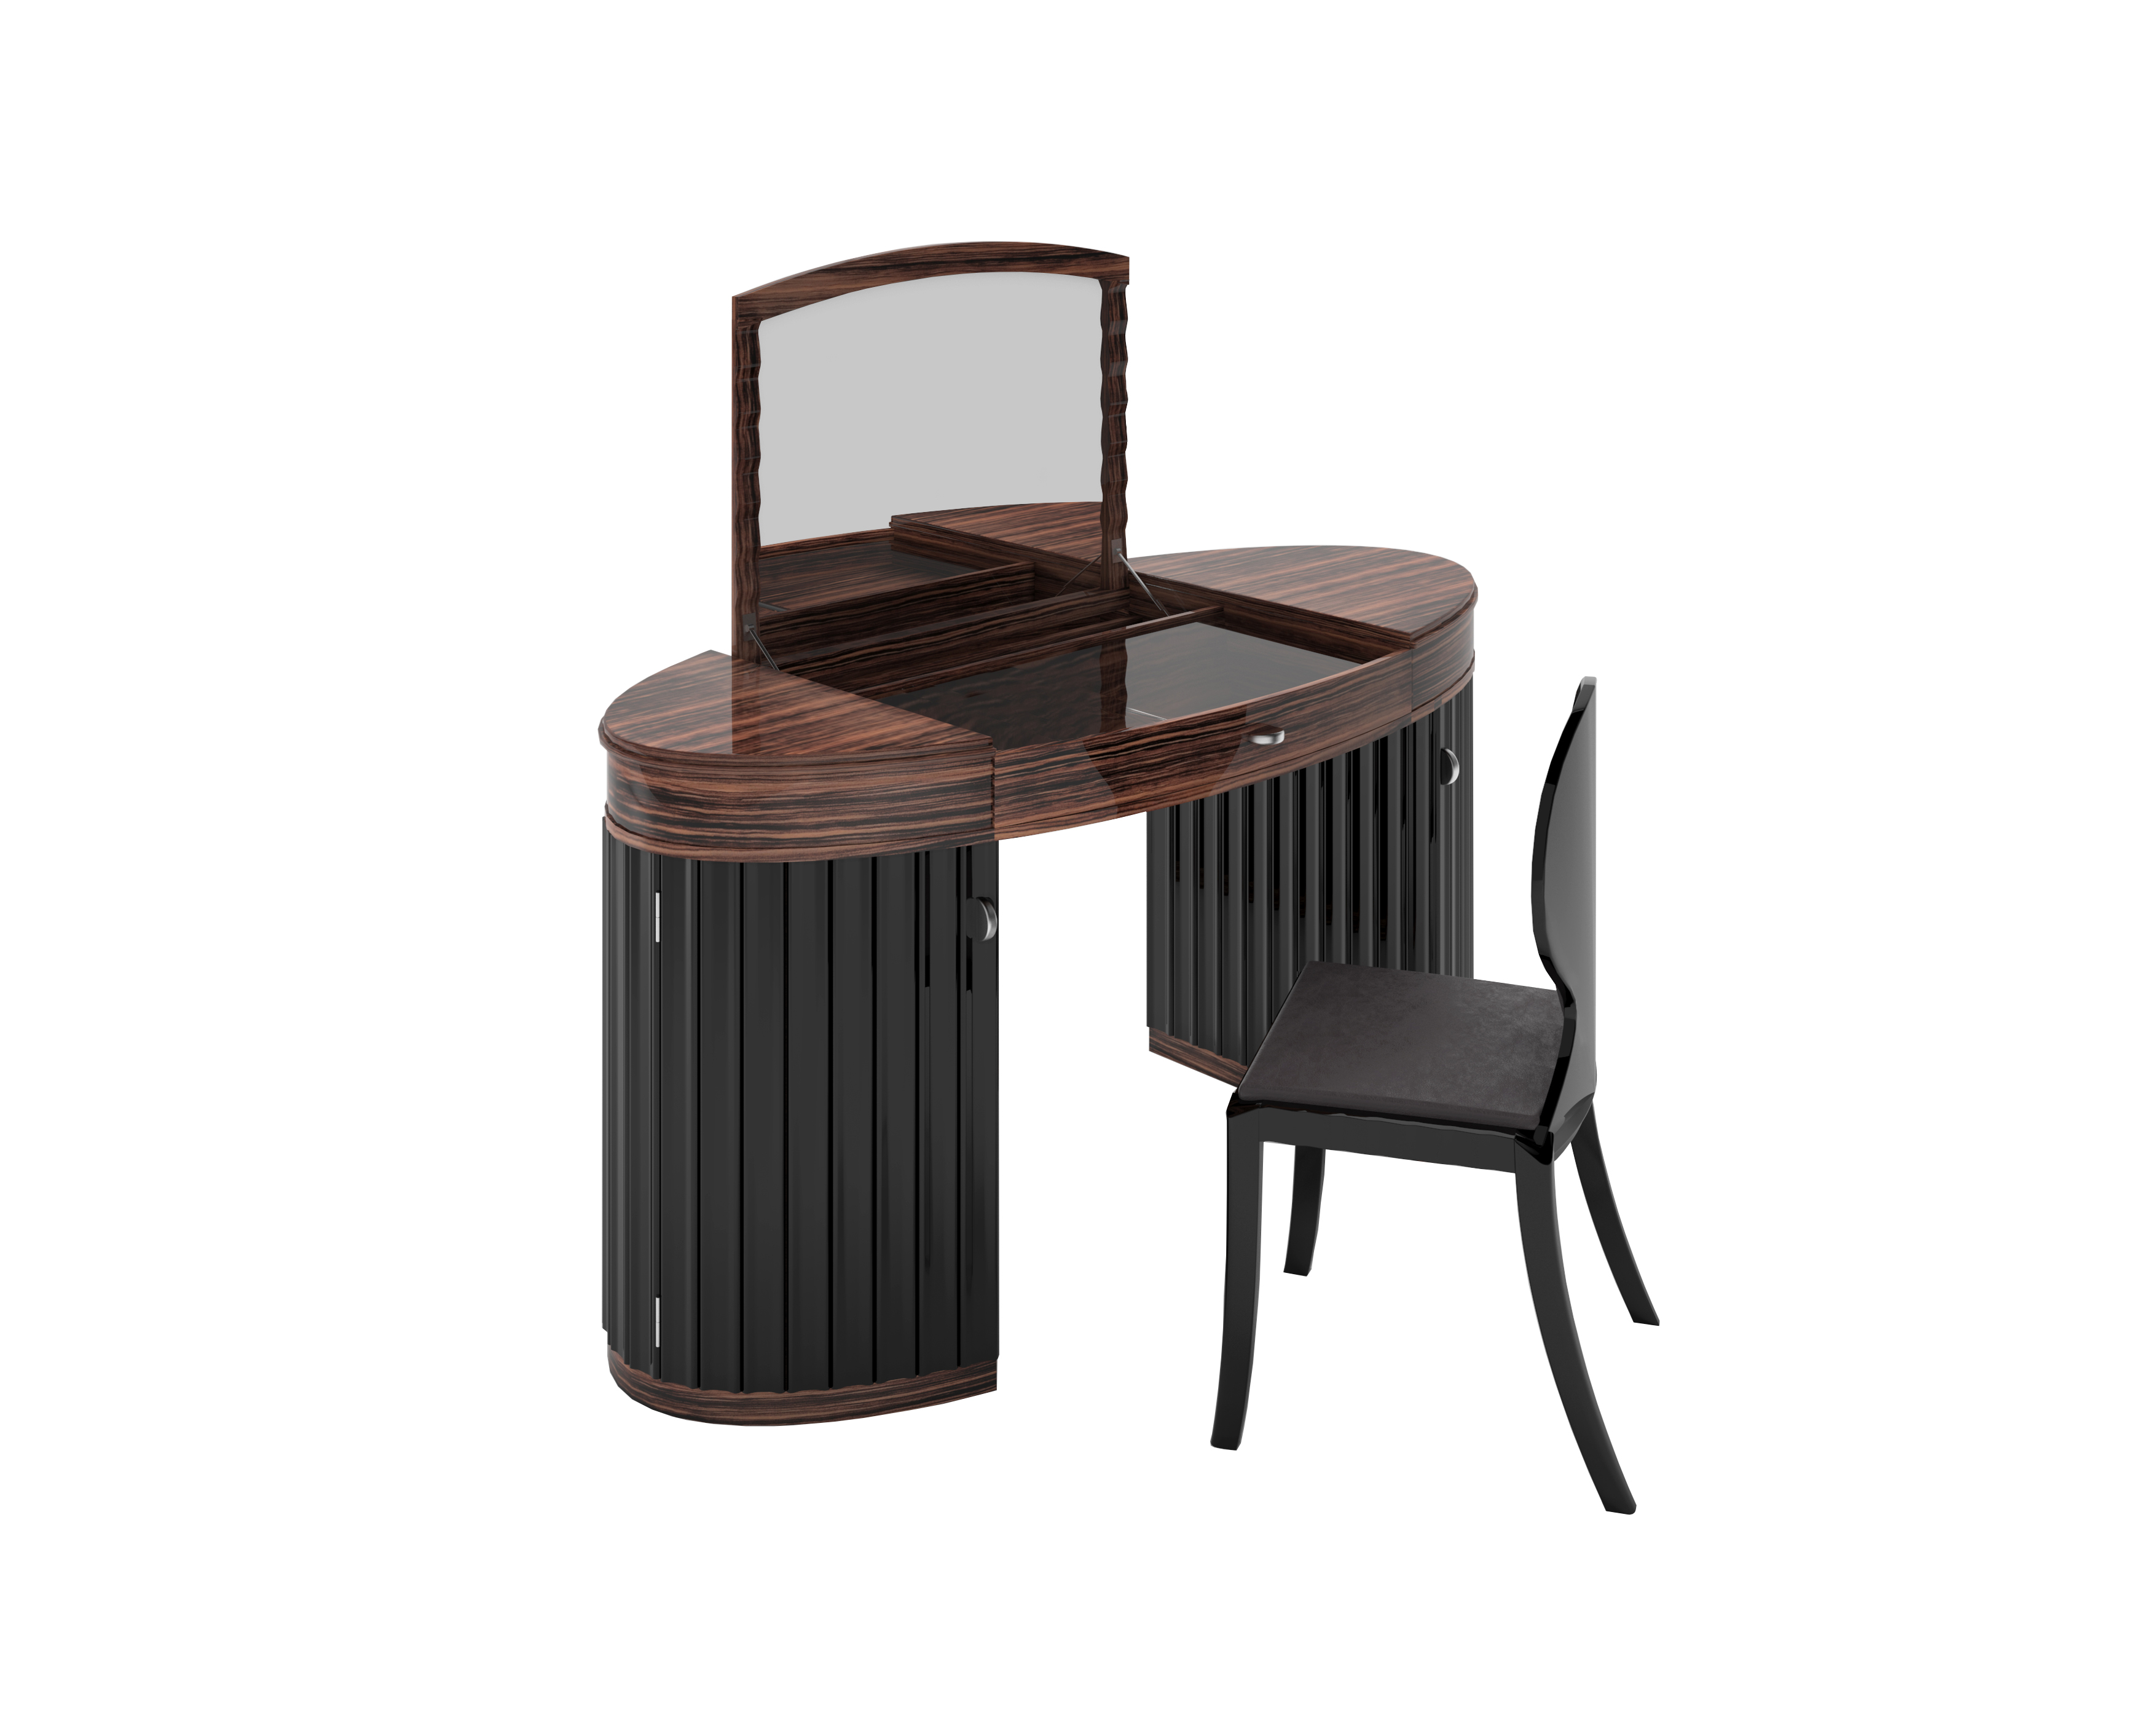 art deco makassar schminktisch original antike m bel. Black Bedroom Furniture Sets. Home Design Ideas